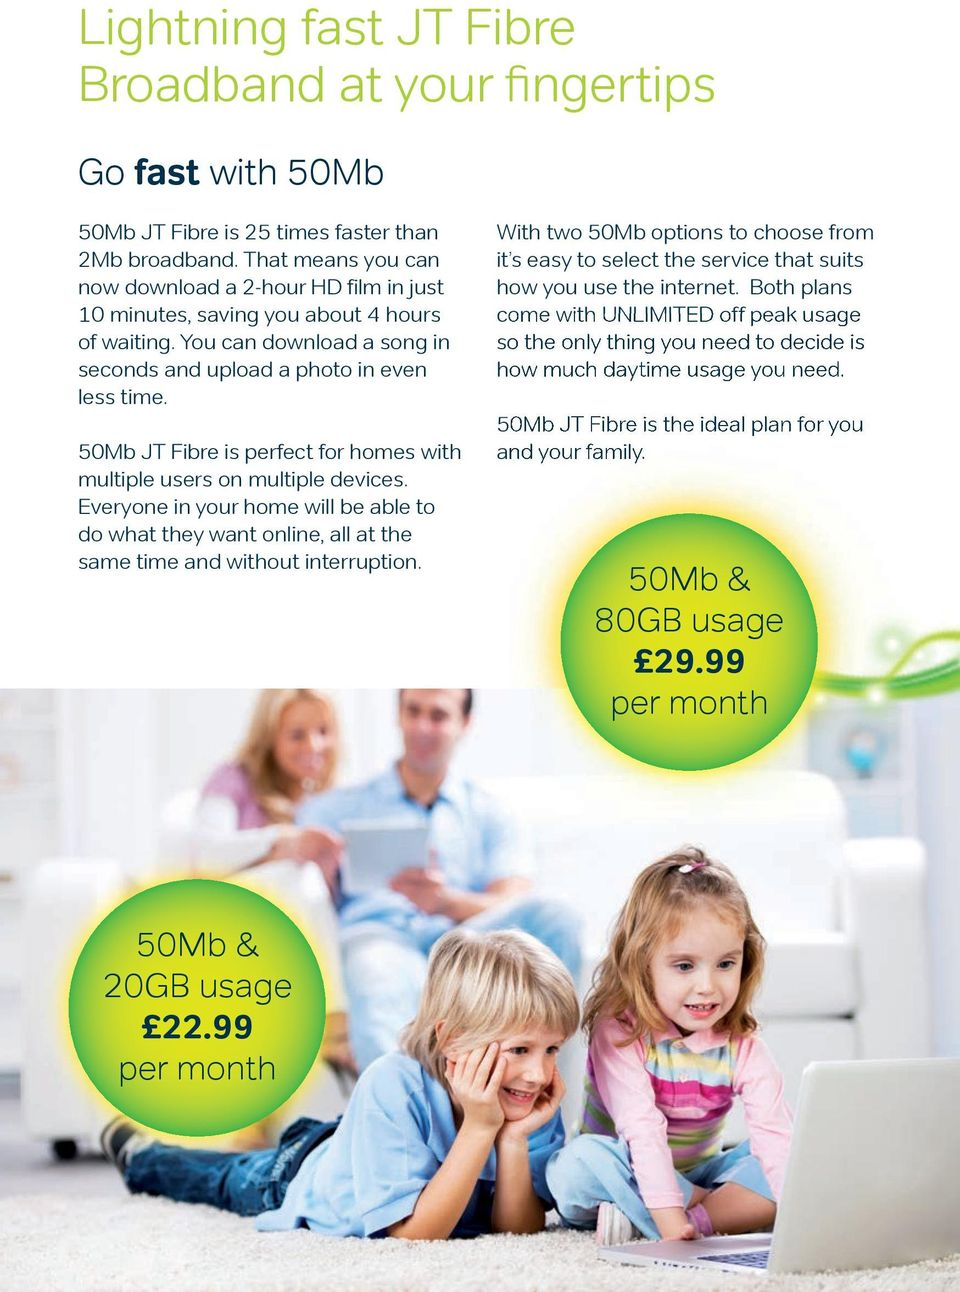 50Mb JT Fibre is perfect for homes with multiple users on multiple devices. Everyone in your home will be able to do what they want online, all at the same time and without interruption.